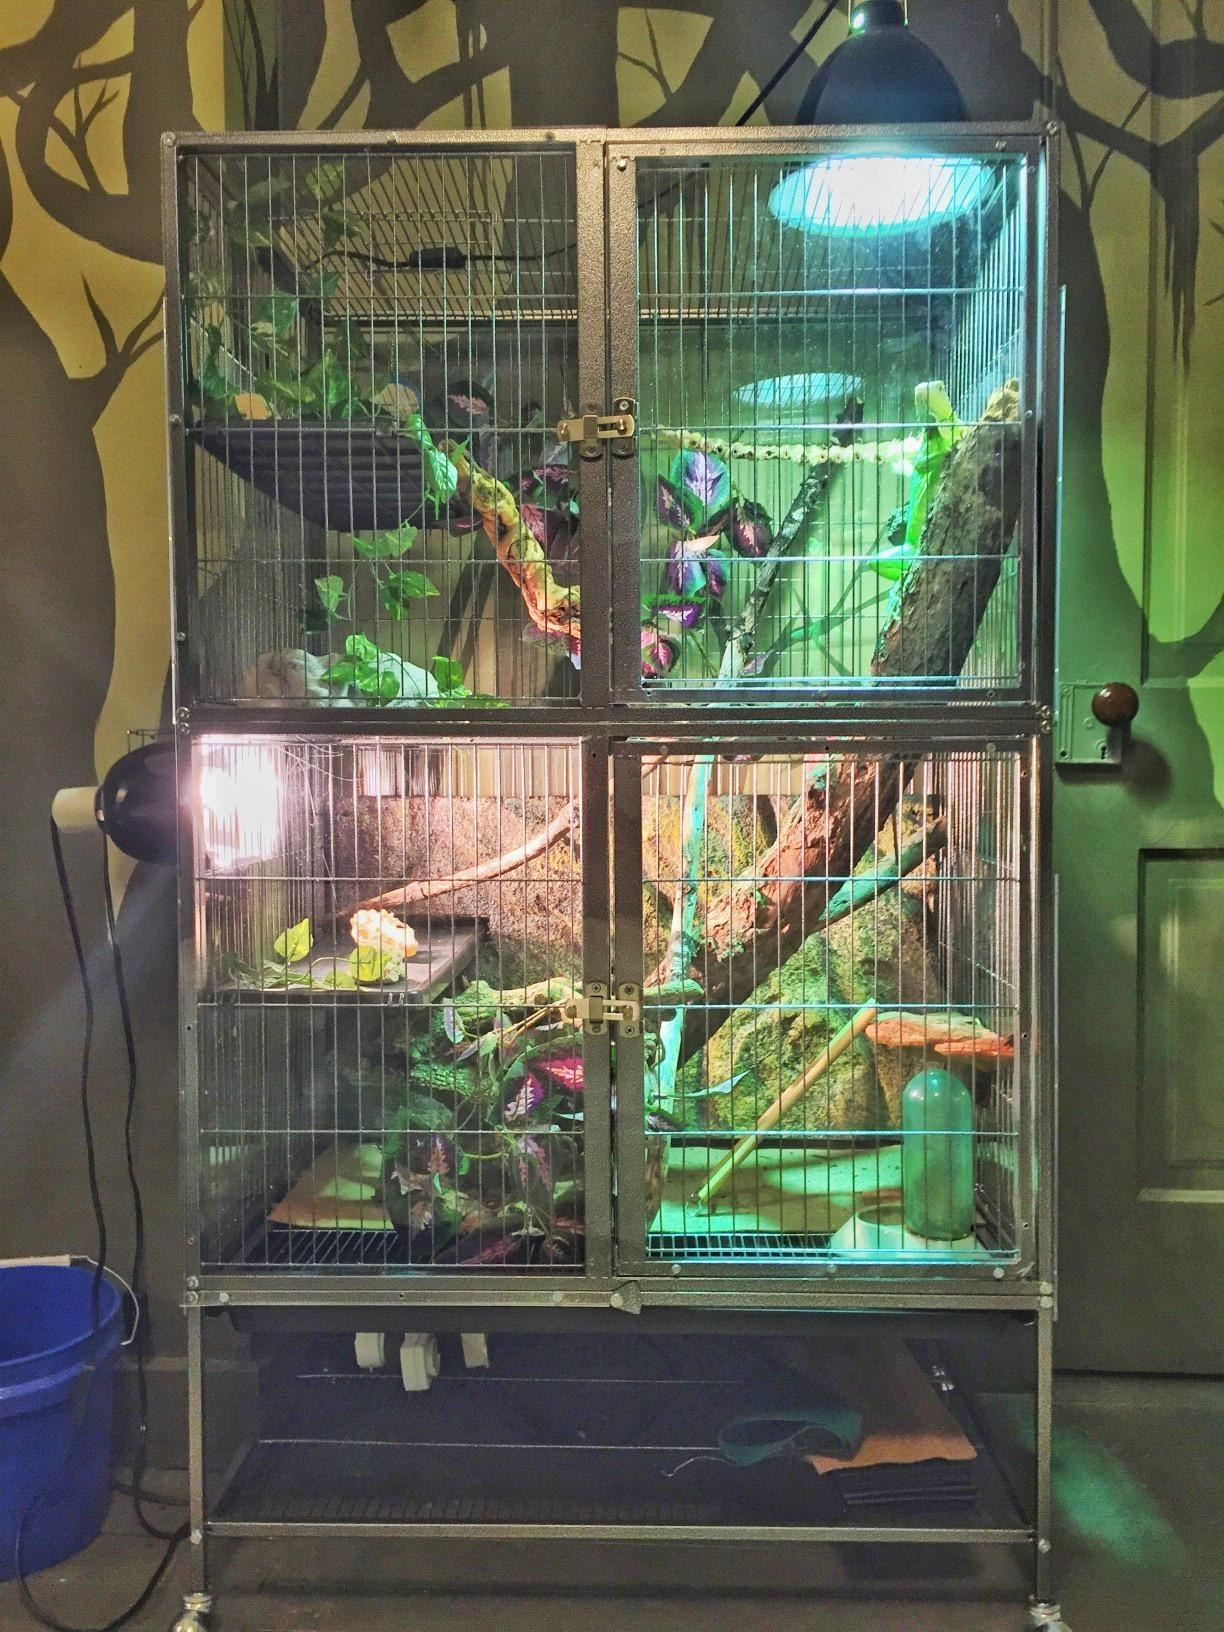 The cage used for reptiles